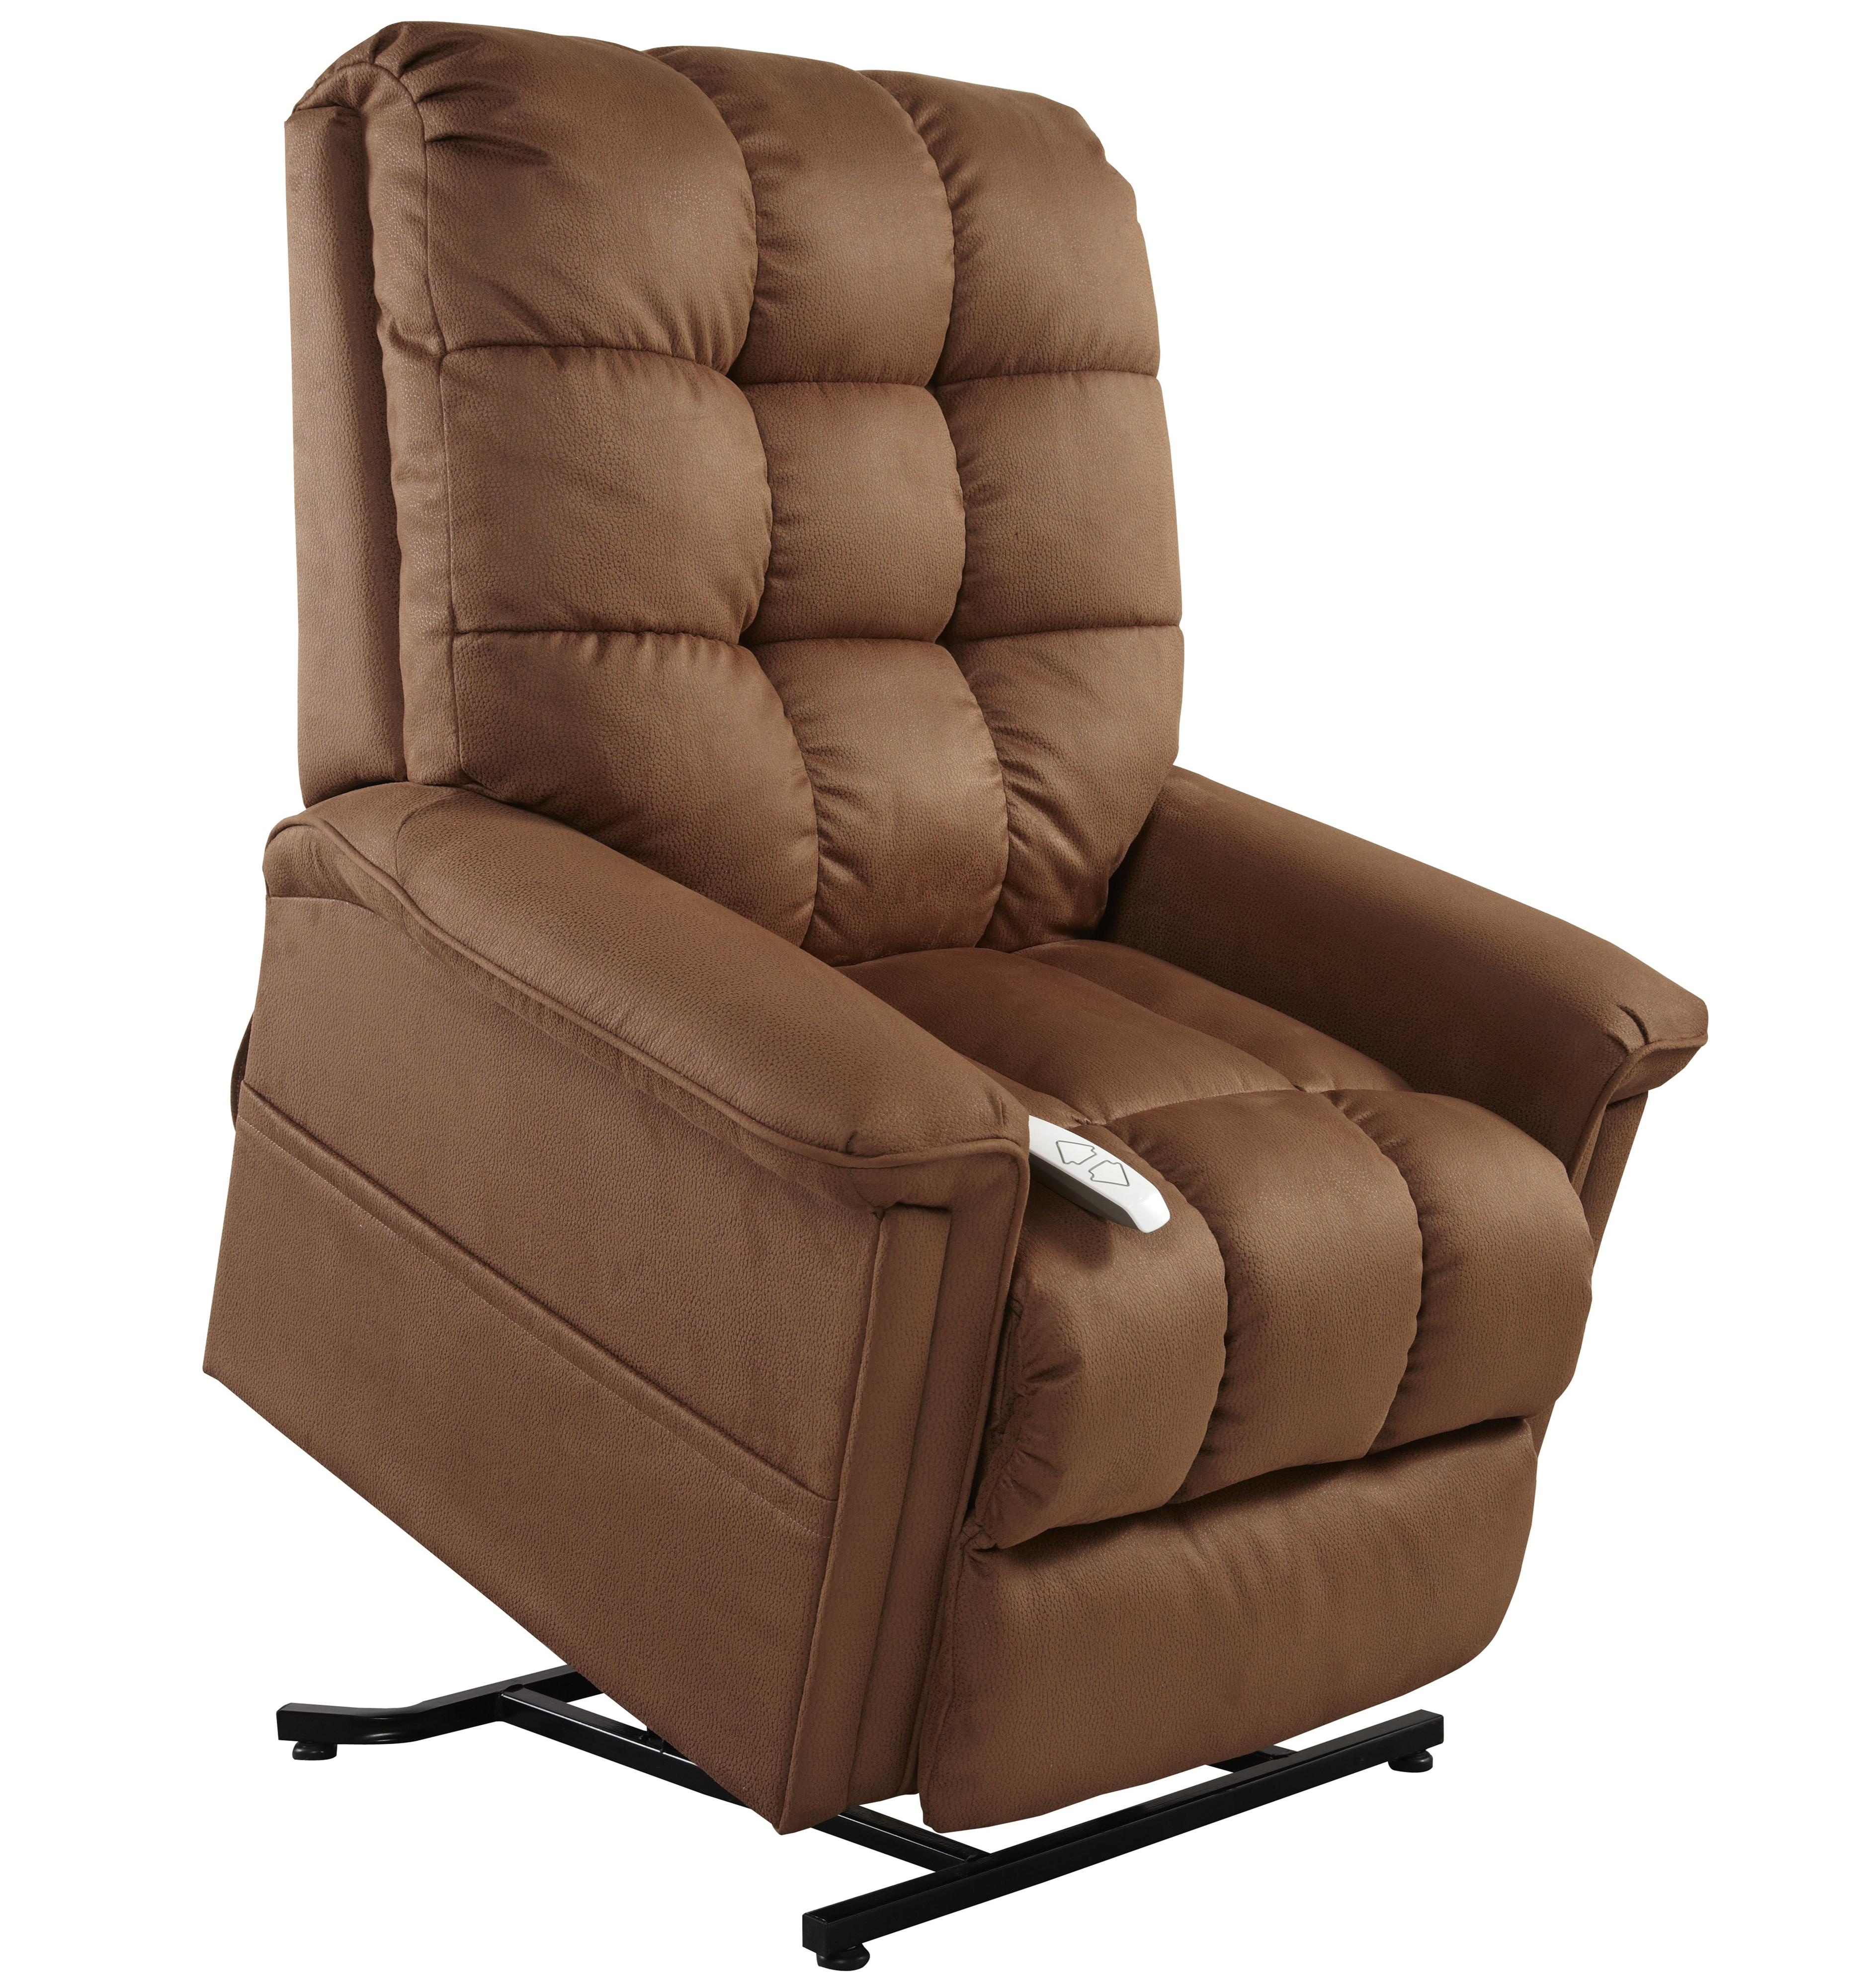 Mega Motion Lift Chairs 3-Position Reclining Lift Chair - Item Number: AS-5001 Rust